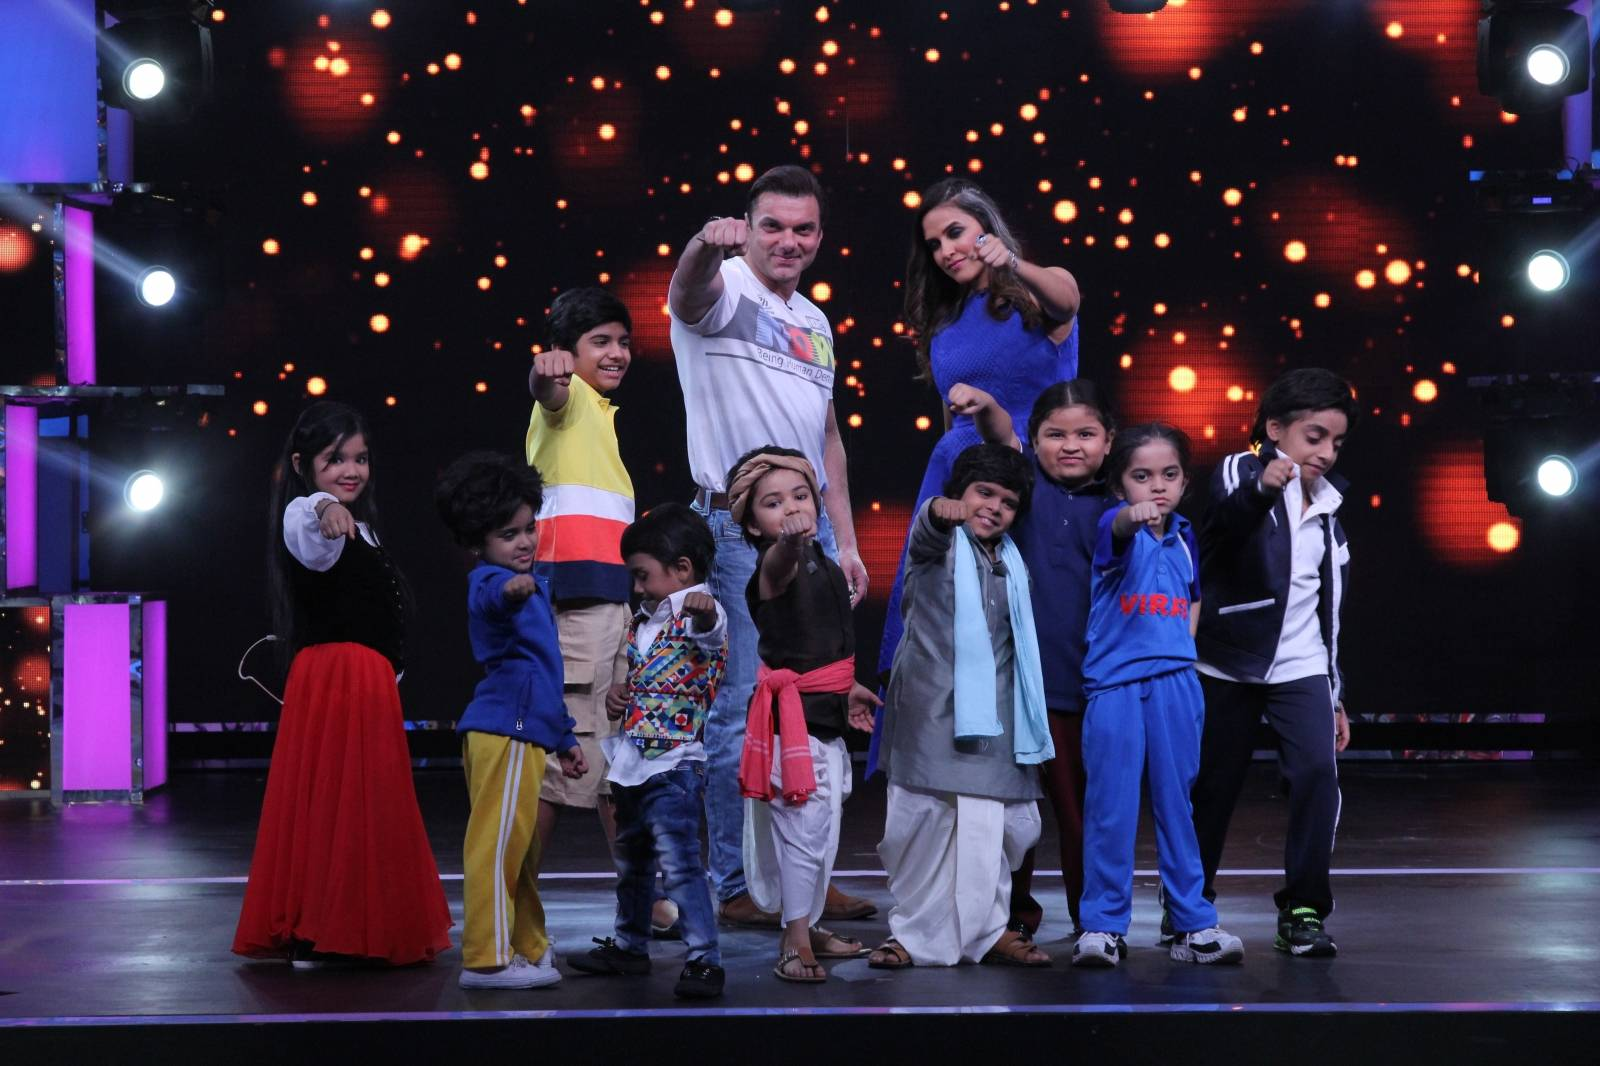 Sneak Peak: Chhote Miyan Dhaakad is bringing in more fun coming weekend